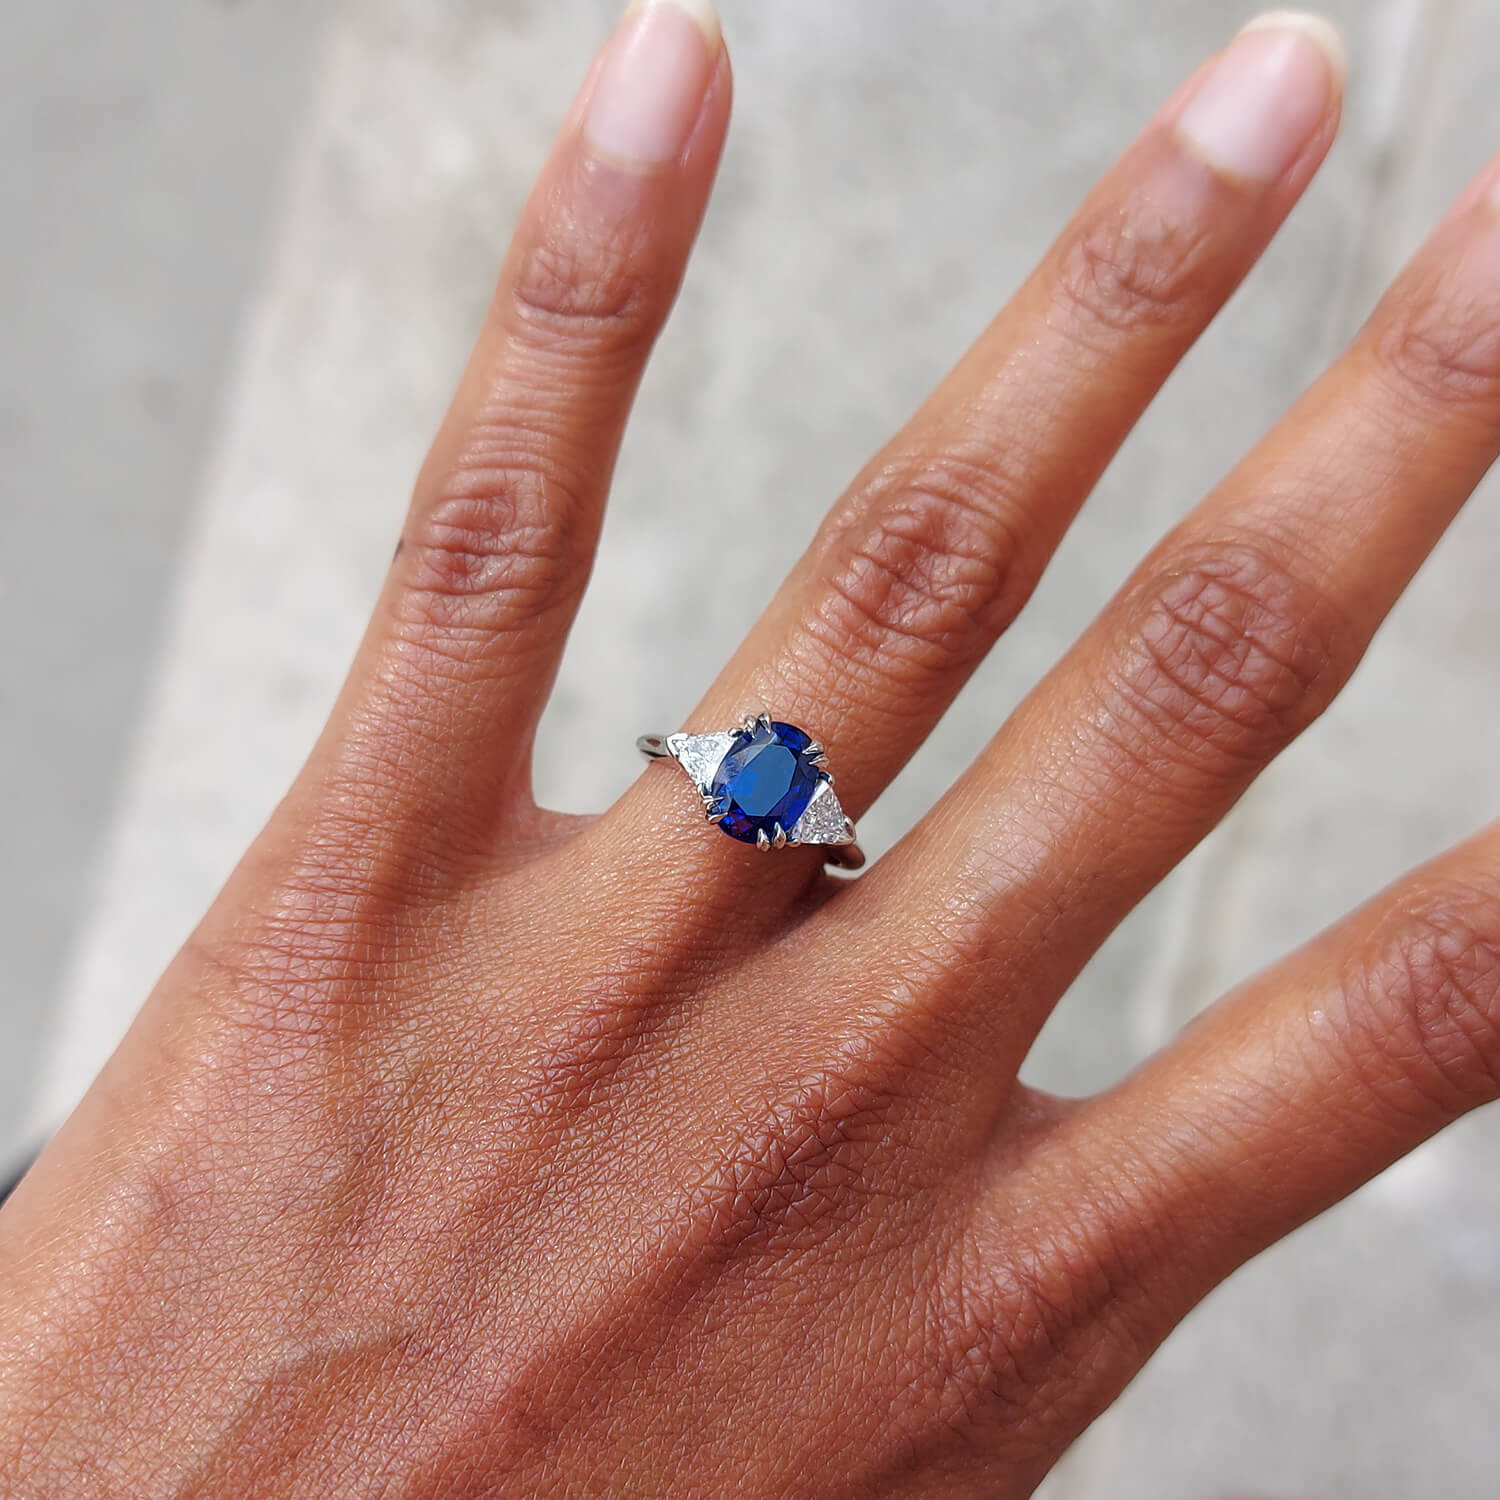 Susannah Lovis Enjoy Rave Reviews For Their Bespoke Engagement Rings Collection